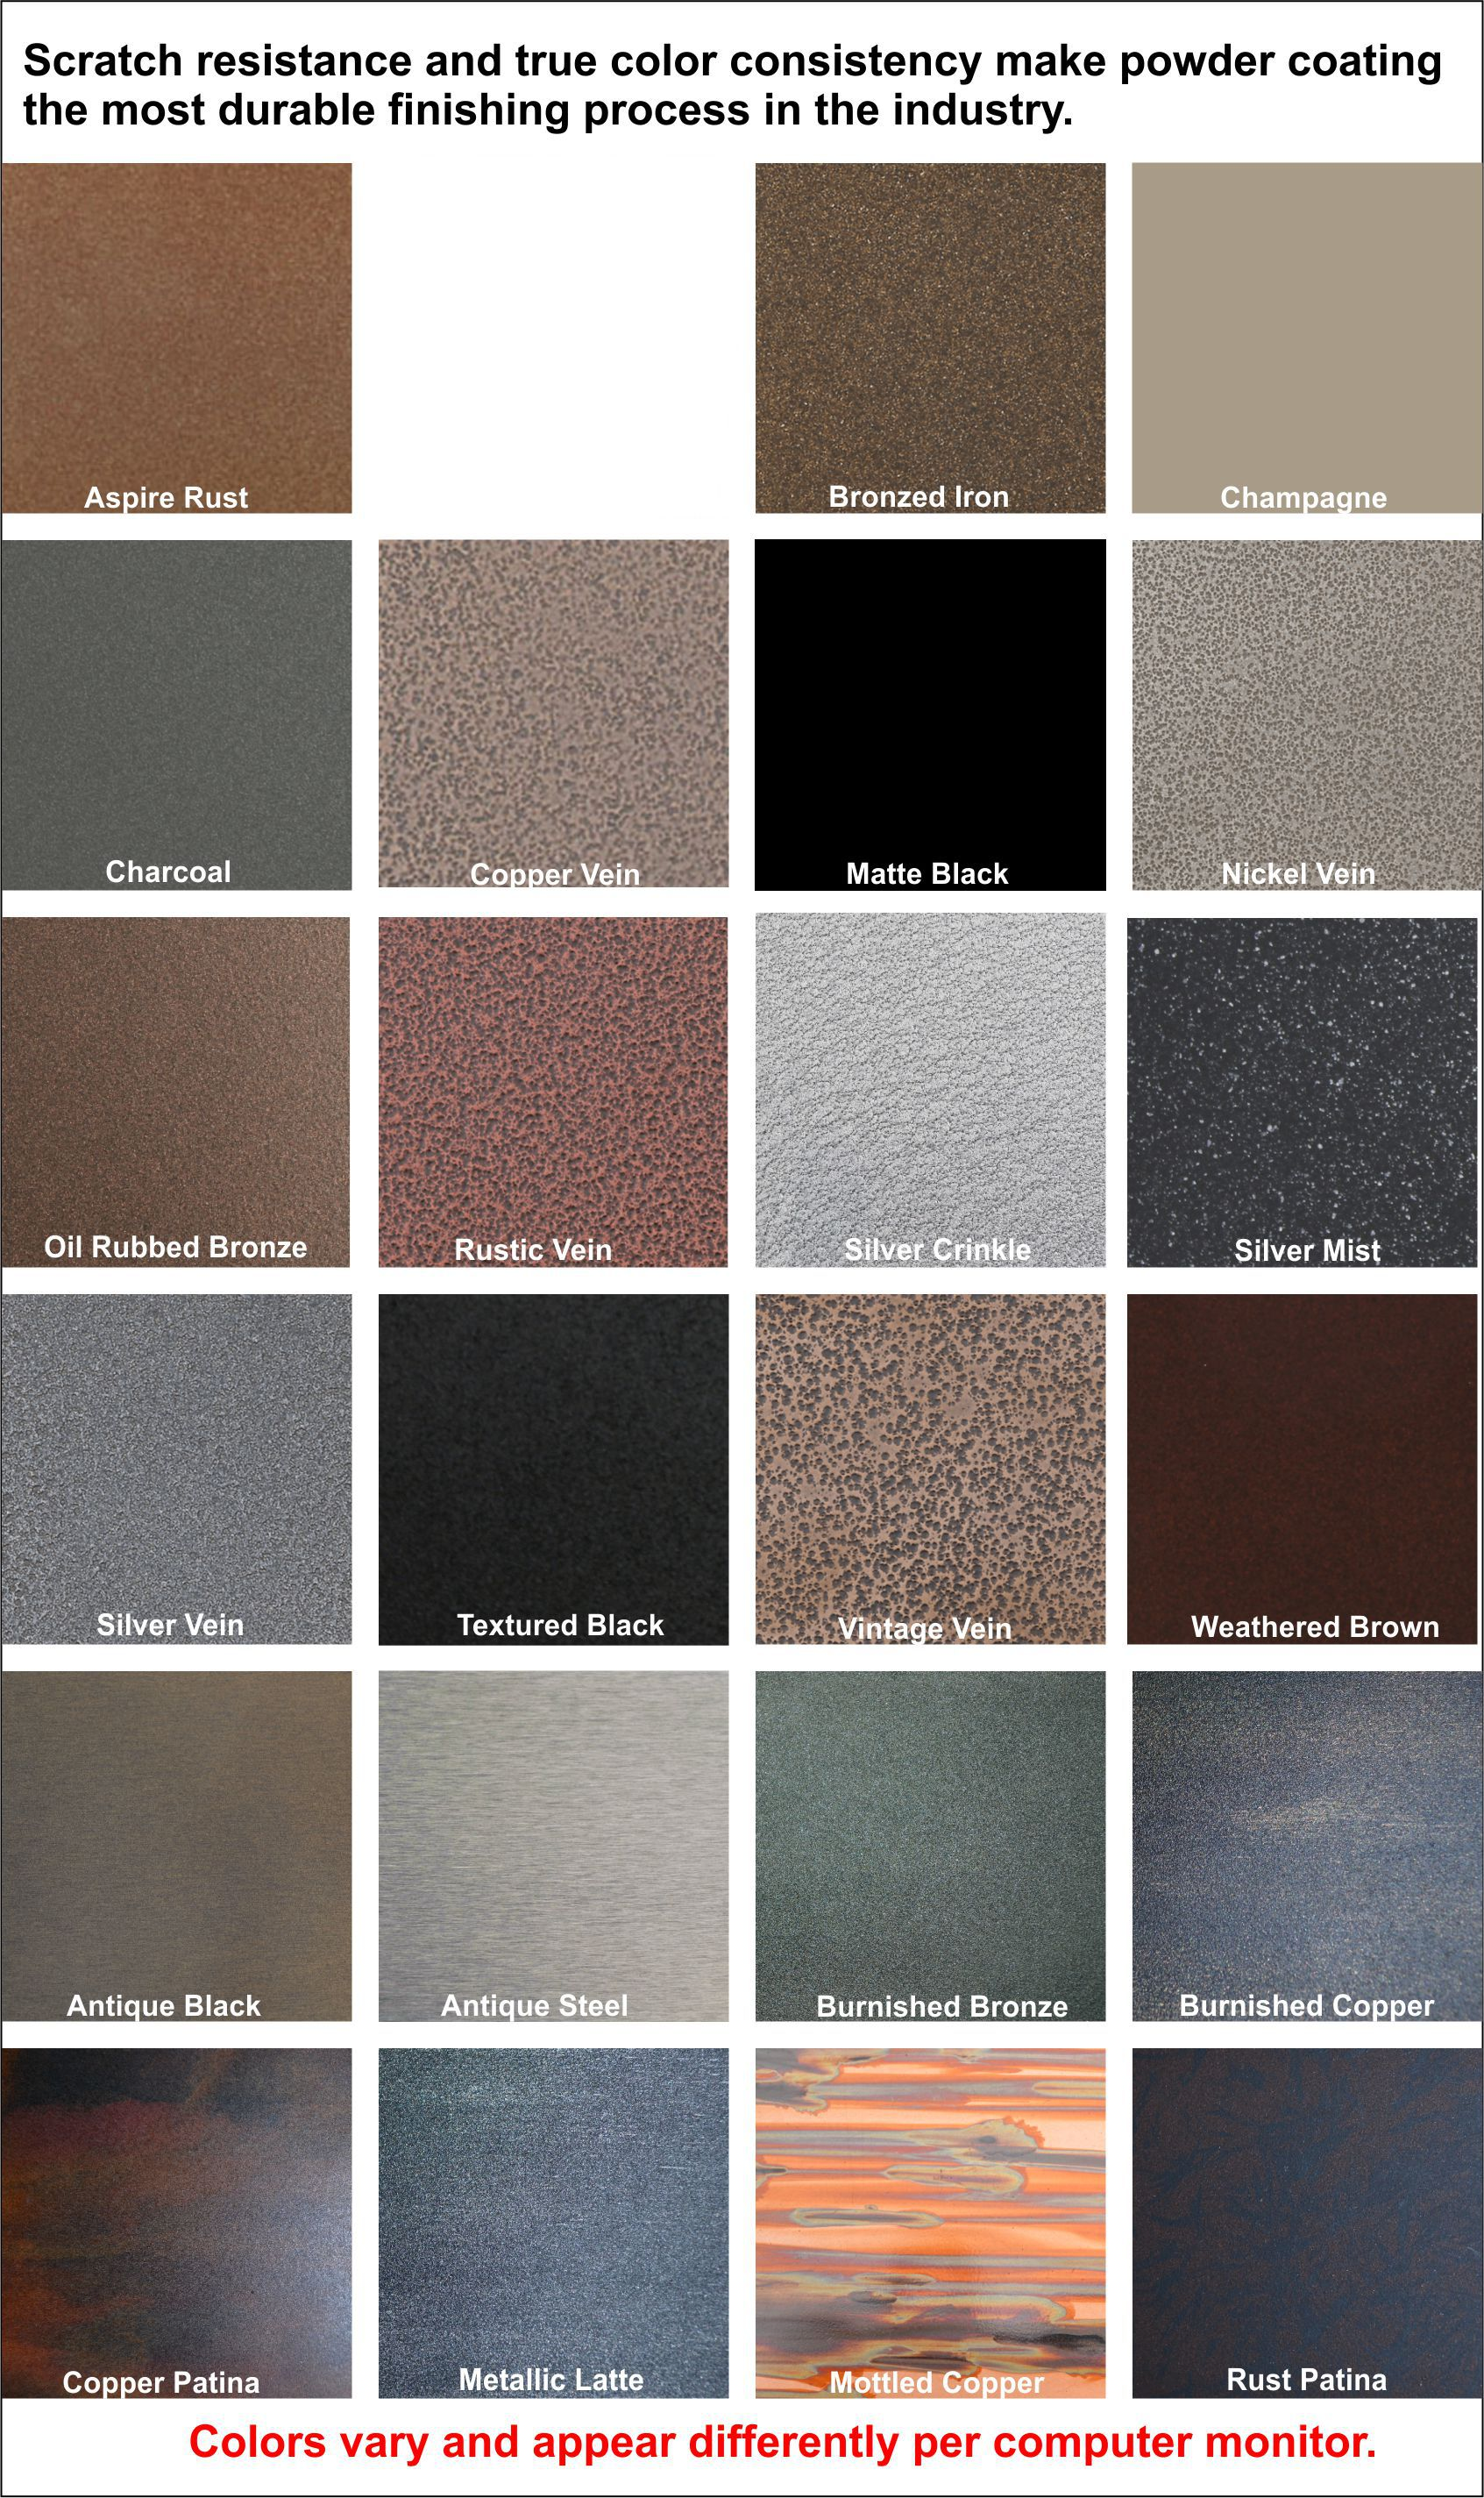 What color finish for your fireplace doors?